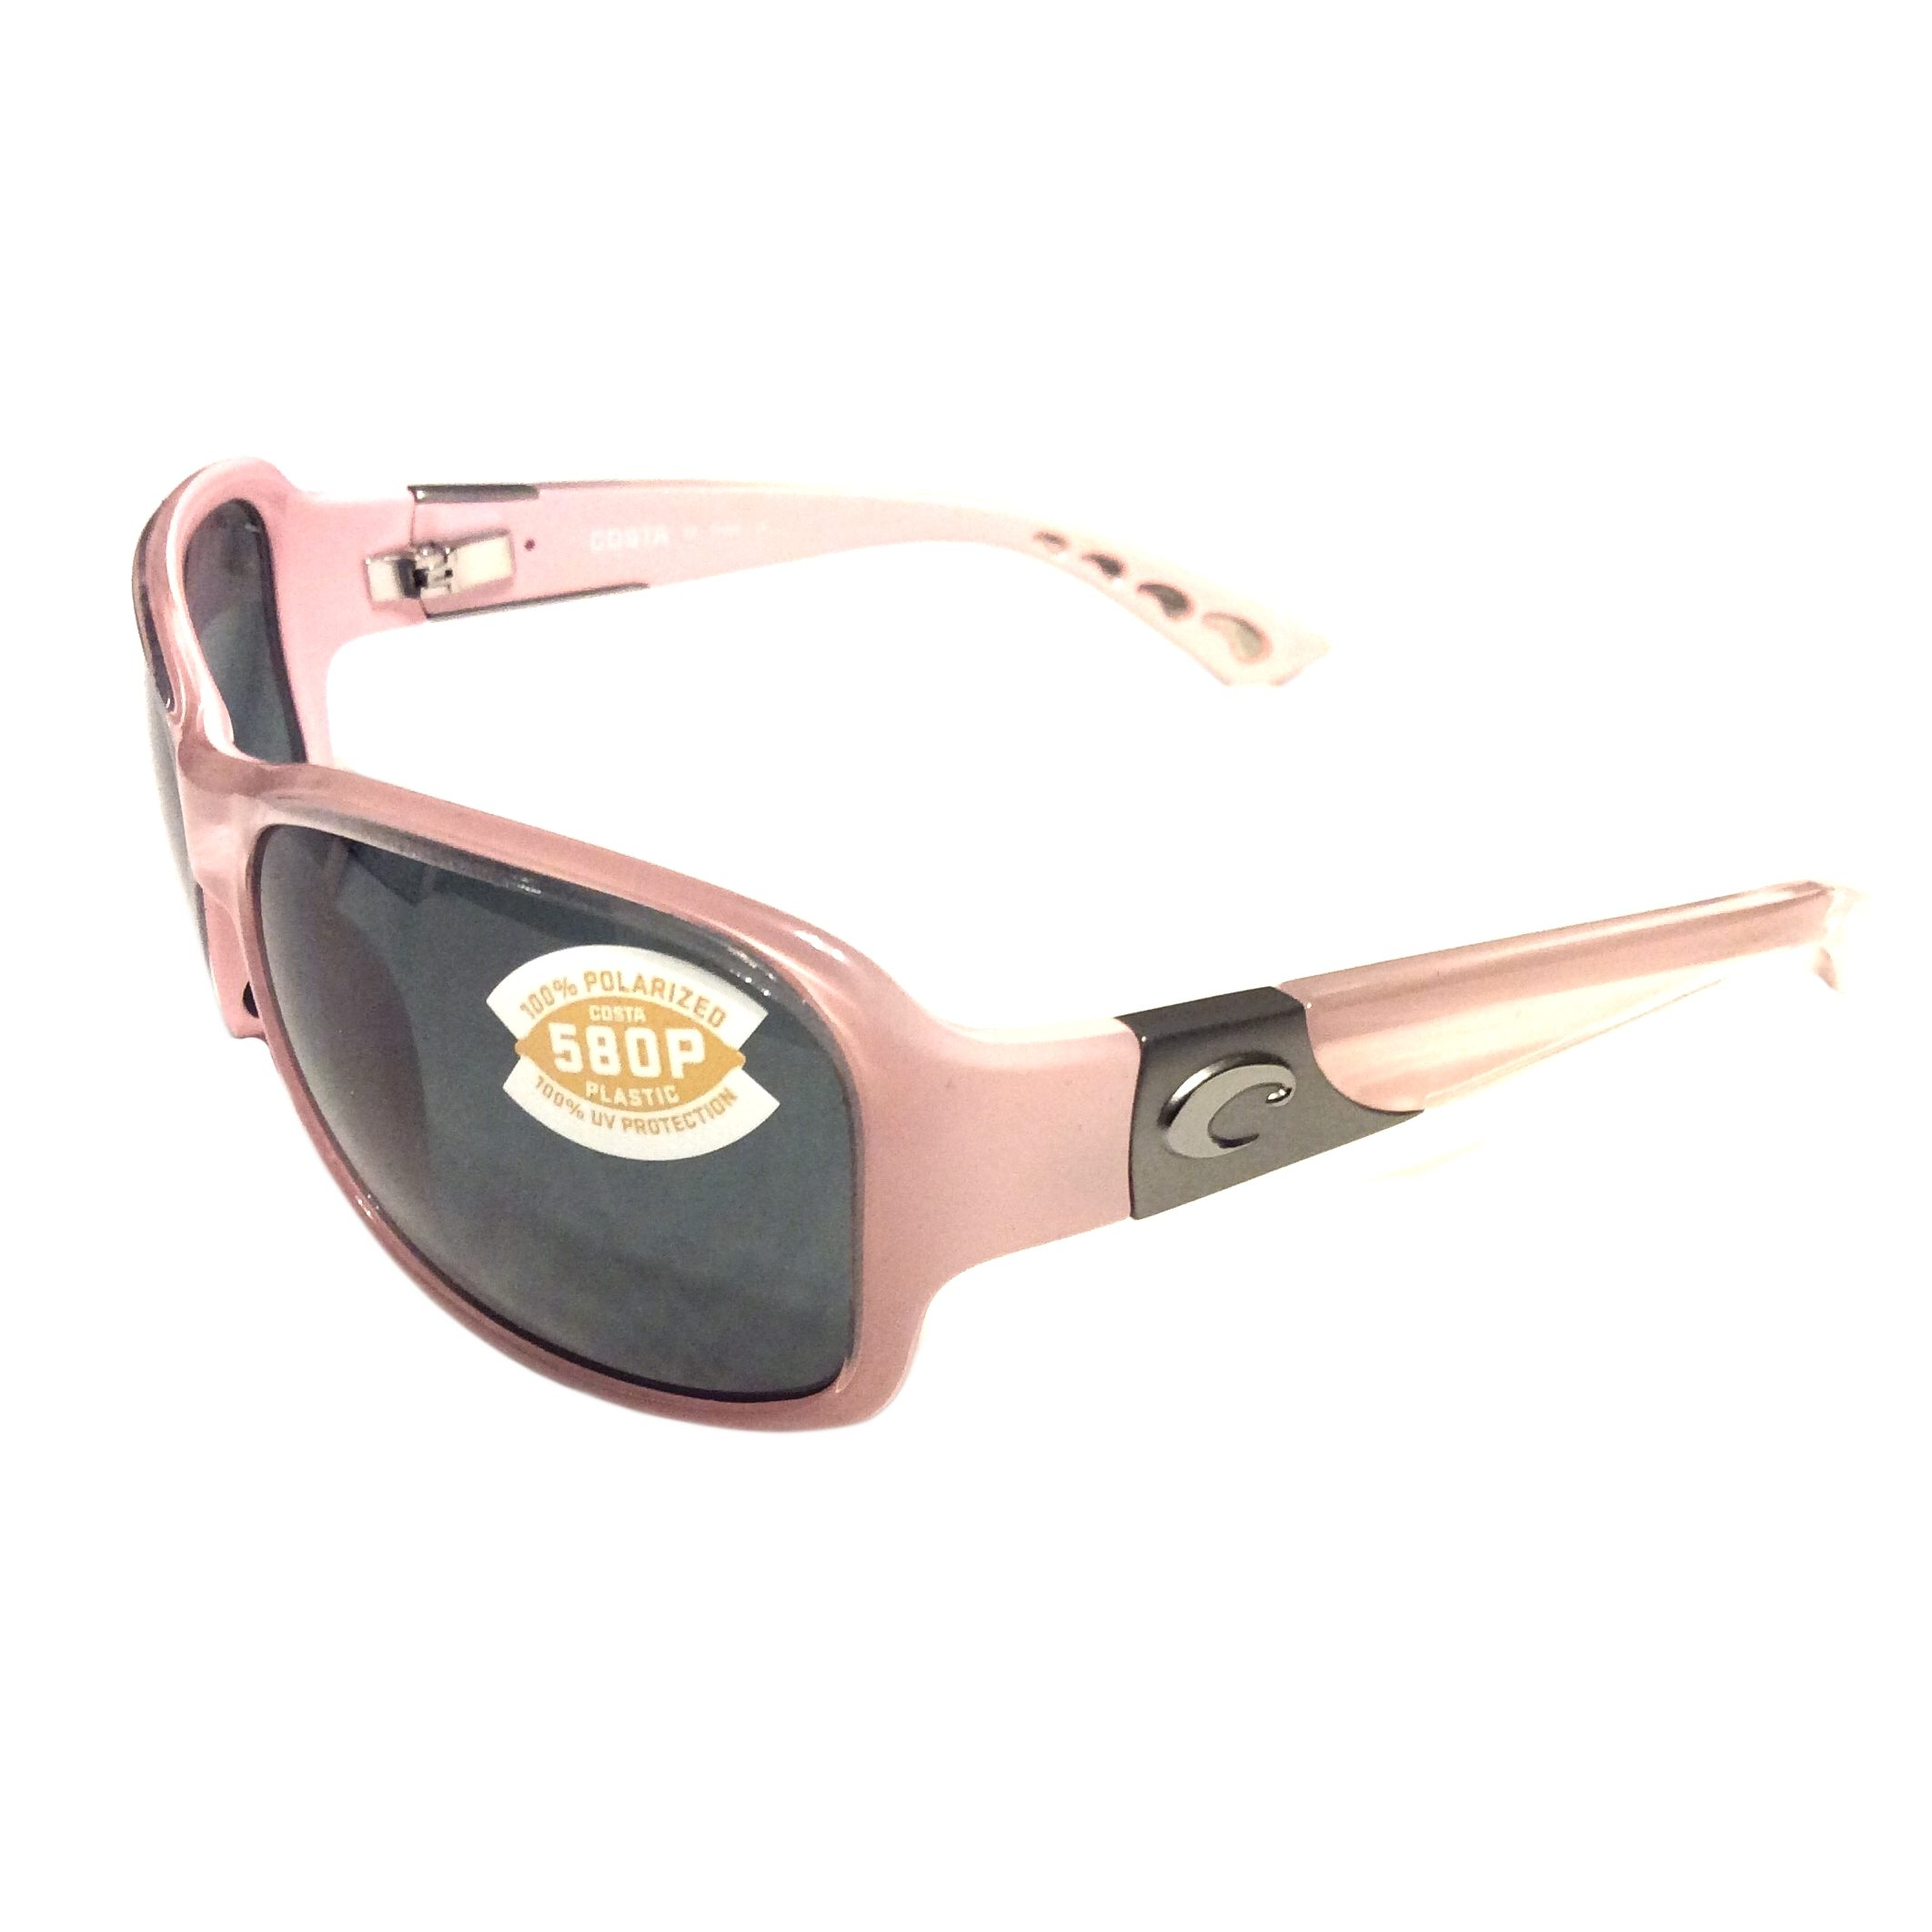 9ed9c1c48740 Costa Del Mar Inlet - Coral Pink - Polarized Gray 580P - NativeSlope ...